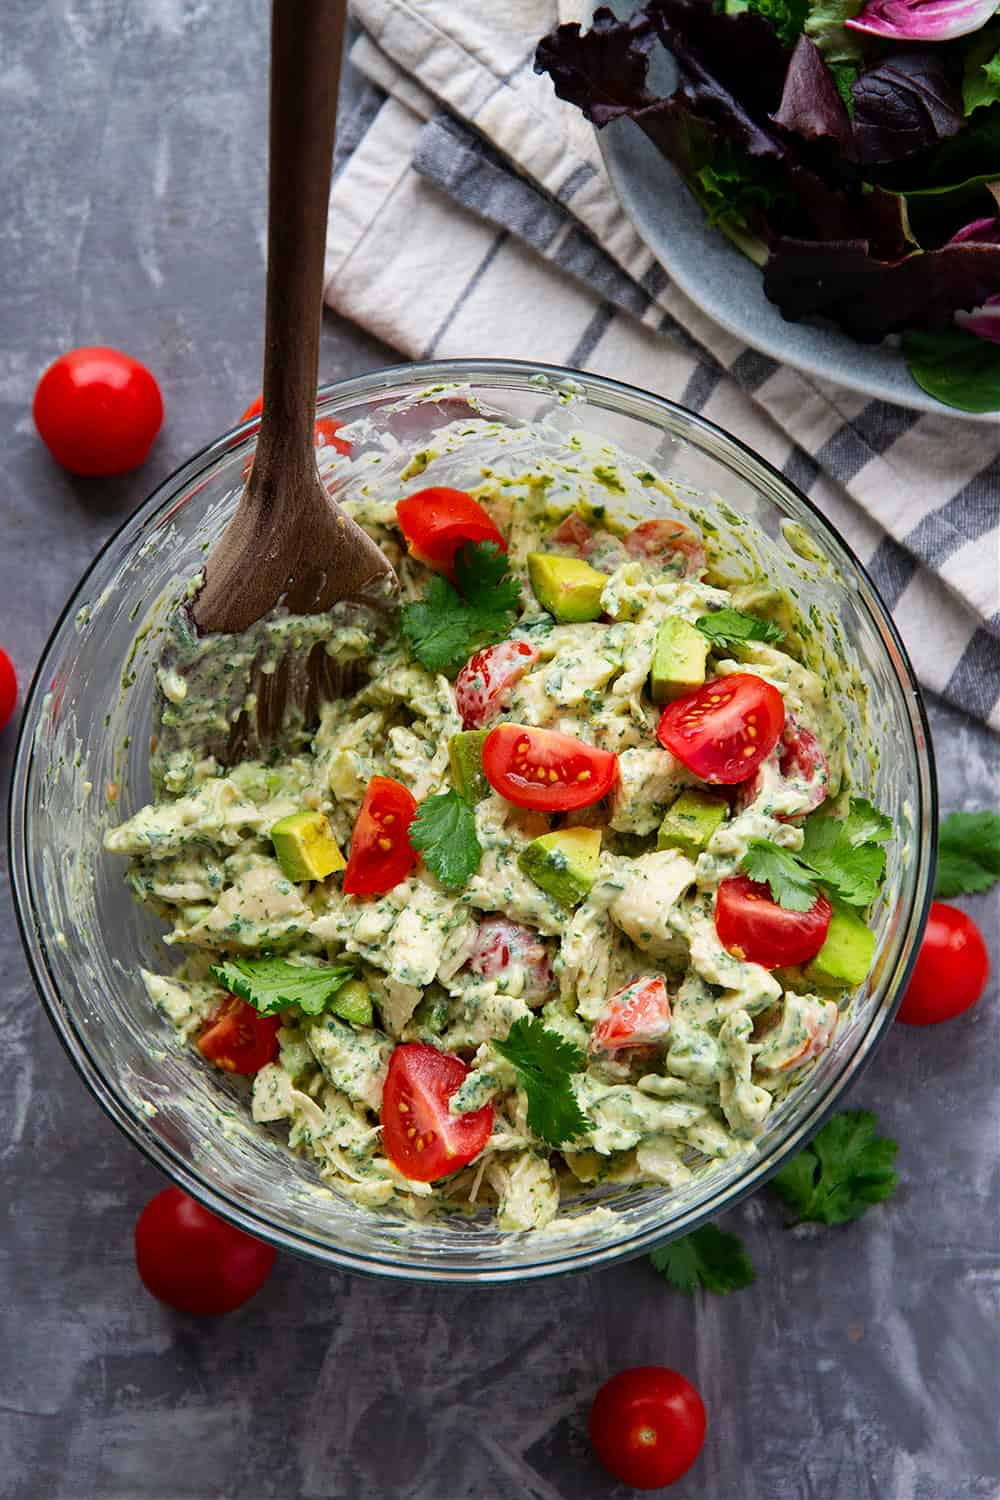 A creamy, herby homemade green goddess dressing gets tossed with shredded chicken and plenty of fresh cherry tomatoes and avocado in this green goddess chicken salad! - pile this flavorful chicken salad over greens or on sandwich buns.